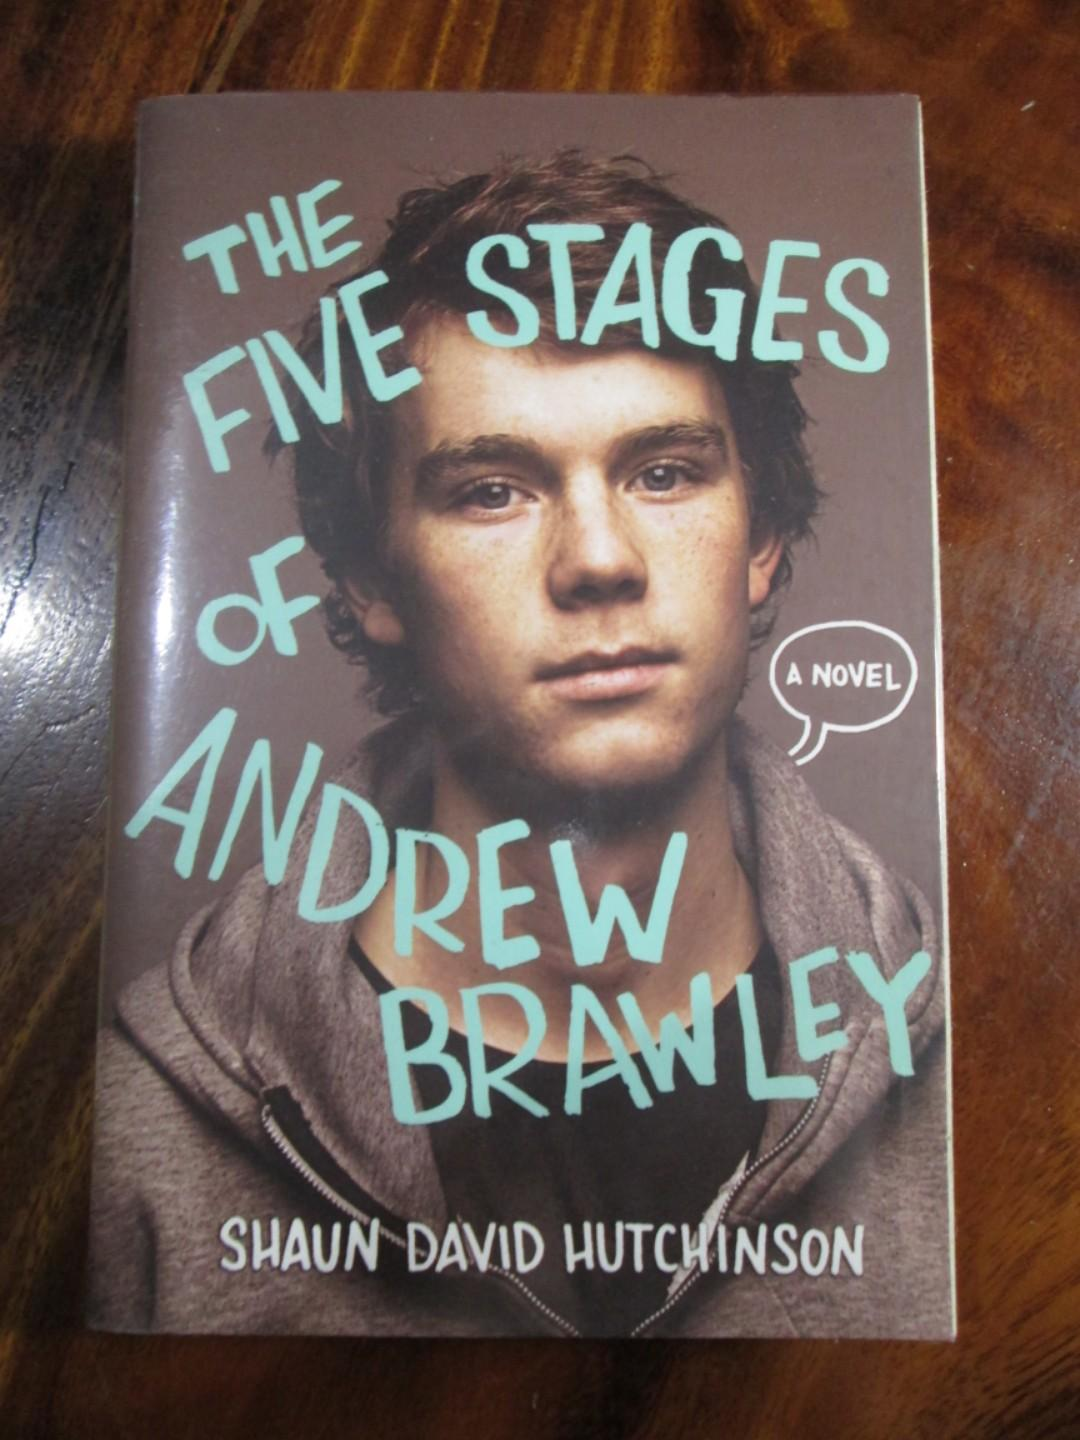 The Five Stages of Andrew Brawley ( Shaun David Hutchinson )